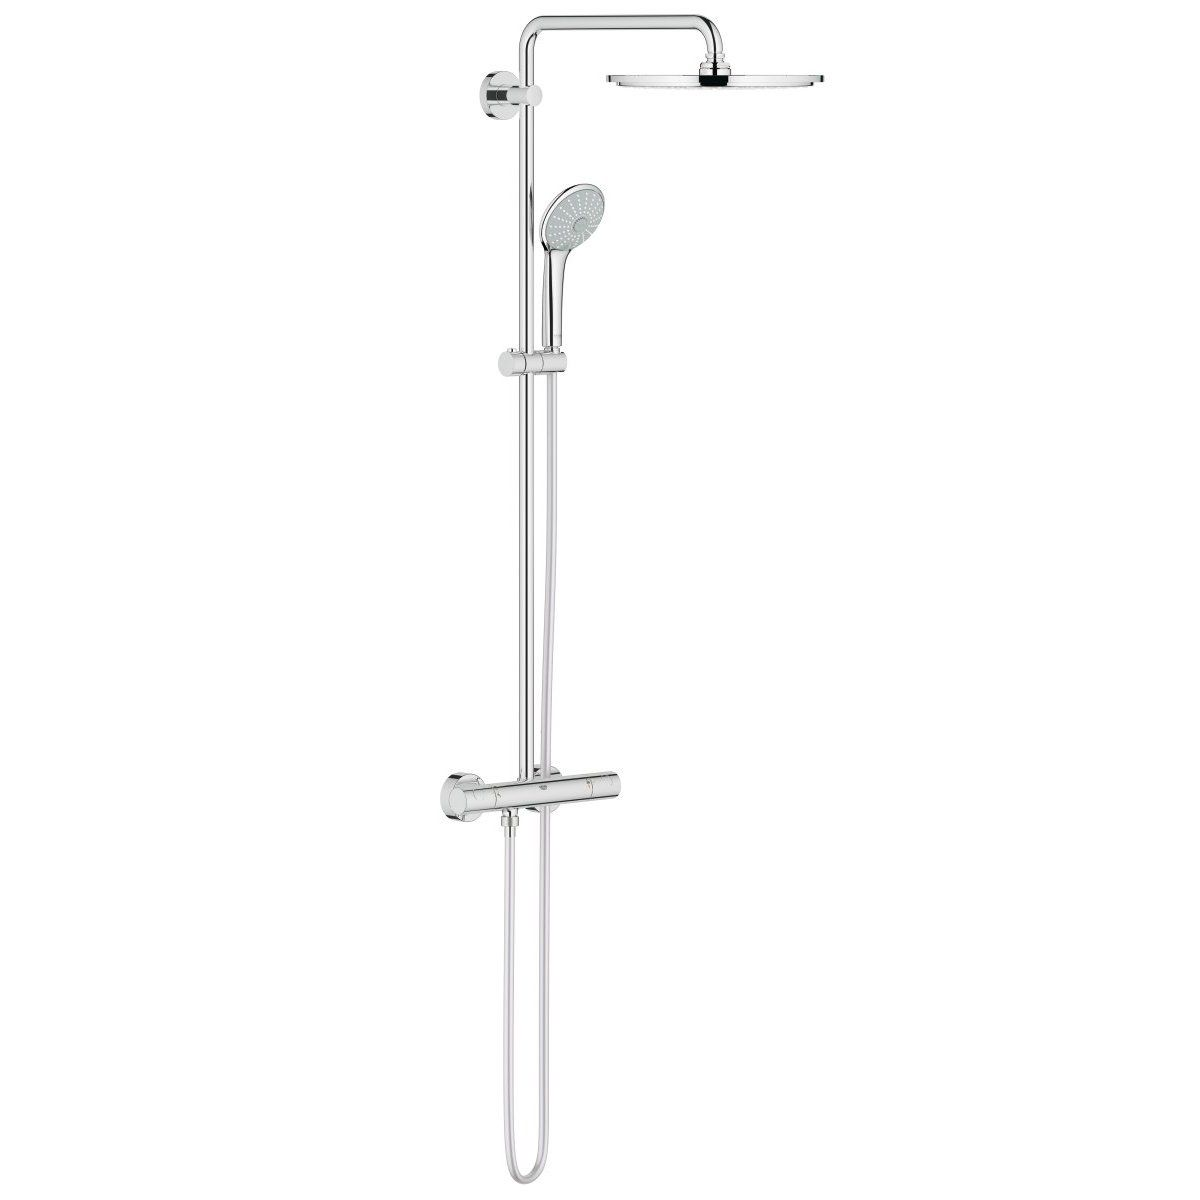 colonne de douche euphoria system thermostatique 310 mm chrom r f 26075000 grohe null